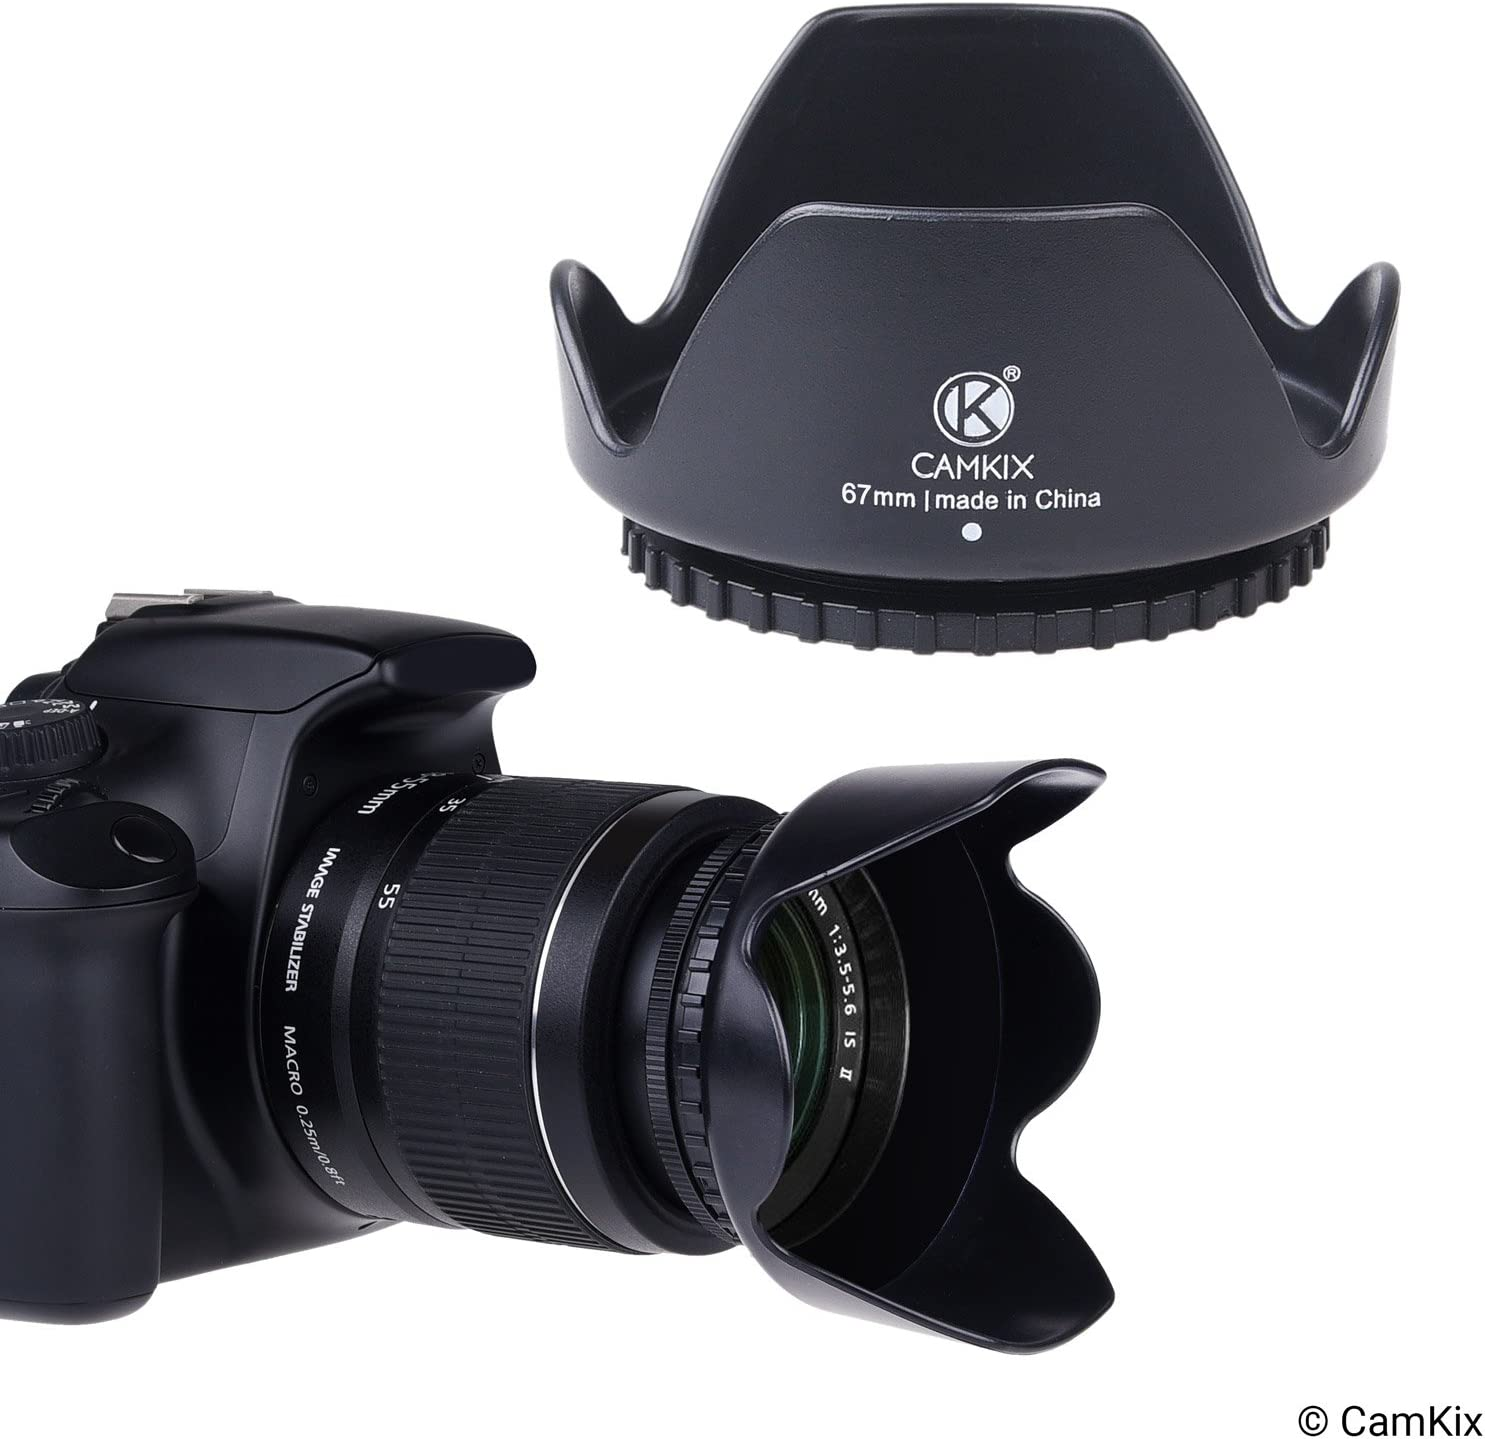 + Tulip Flower Blocks Excess Sunlight for Enhanced Photography and Video Foo 72mm Set of 2 Camera Lens Hoods and 1 Lens Cap Rubber Sun Shade//Shield Collapsible Reduces Lens Flare and Glare